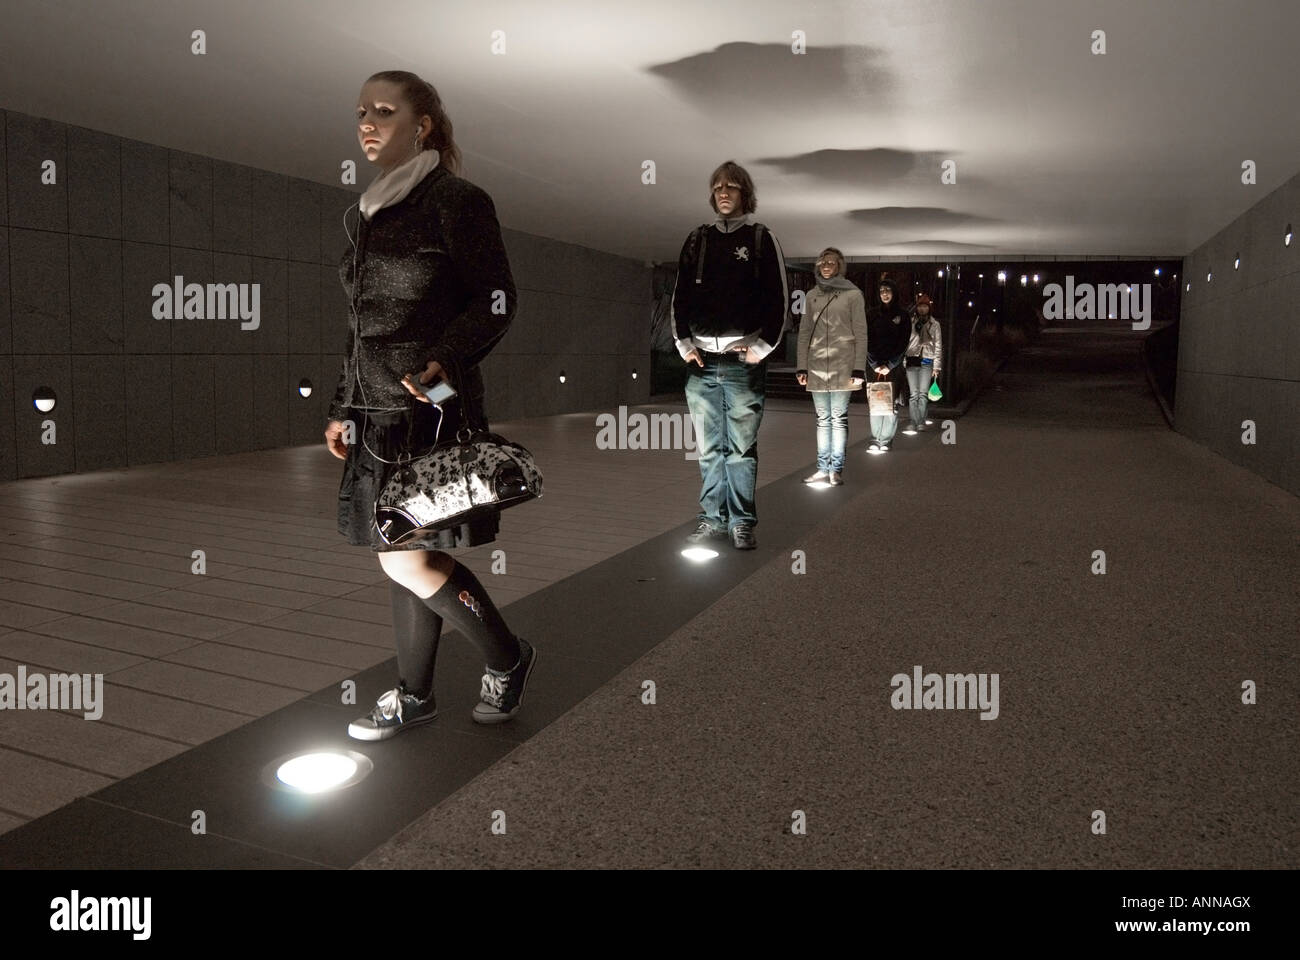 Group of American teenagers stand in a pedestrian underpass at night - Stock Image